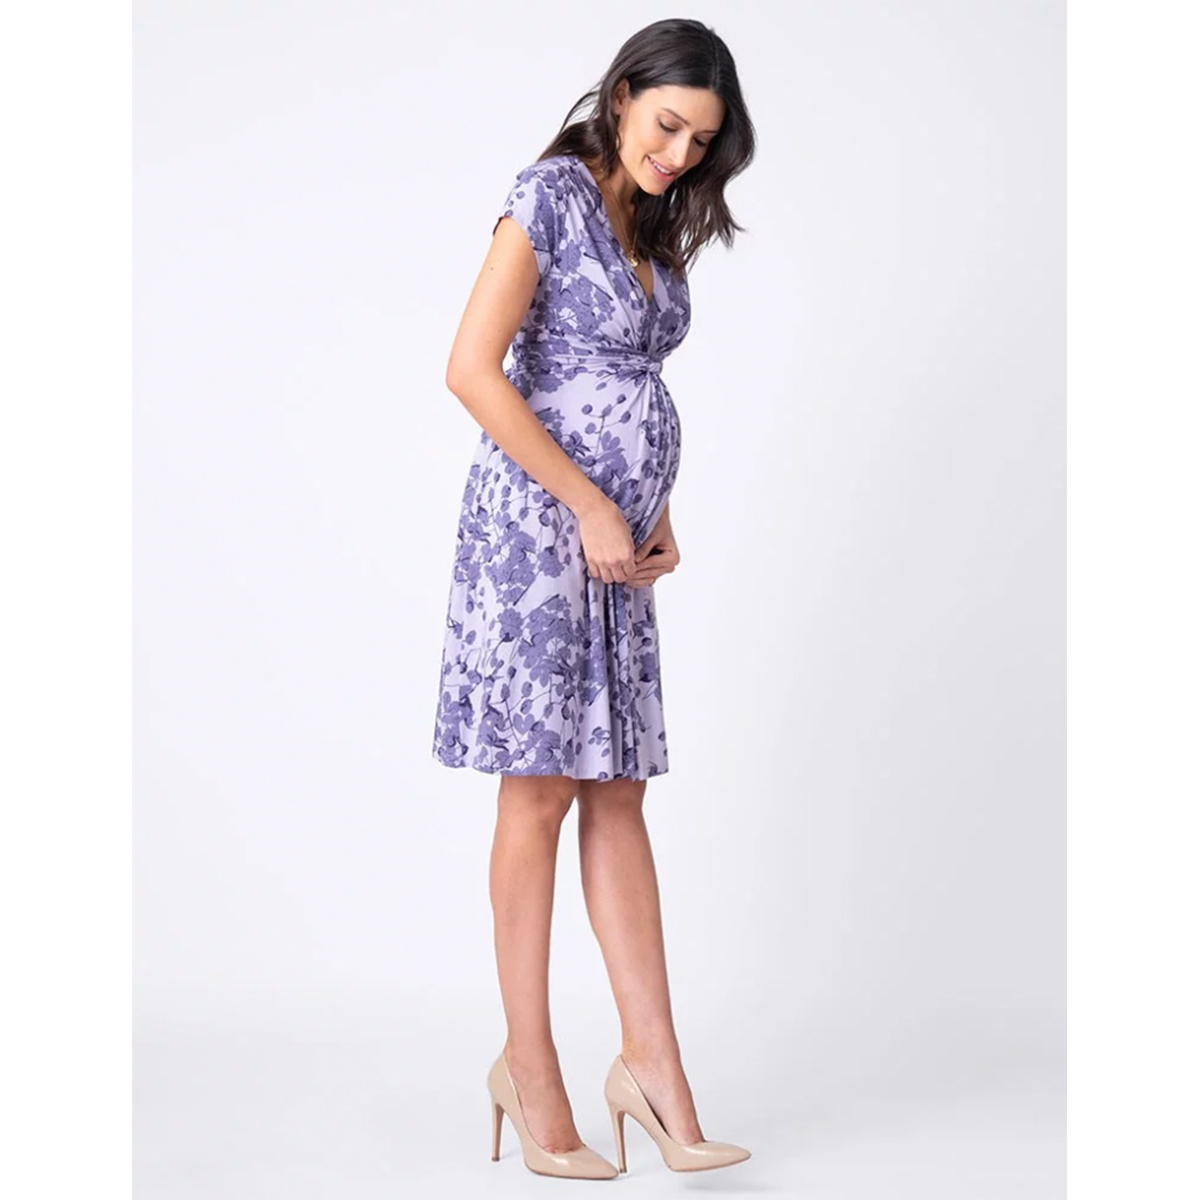 4192f5decc4 Where to Shop for Maternity Clothes Online